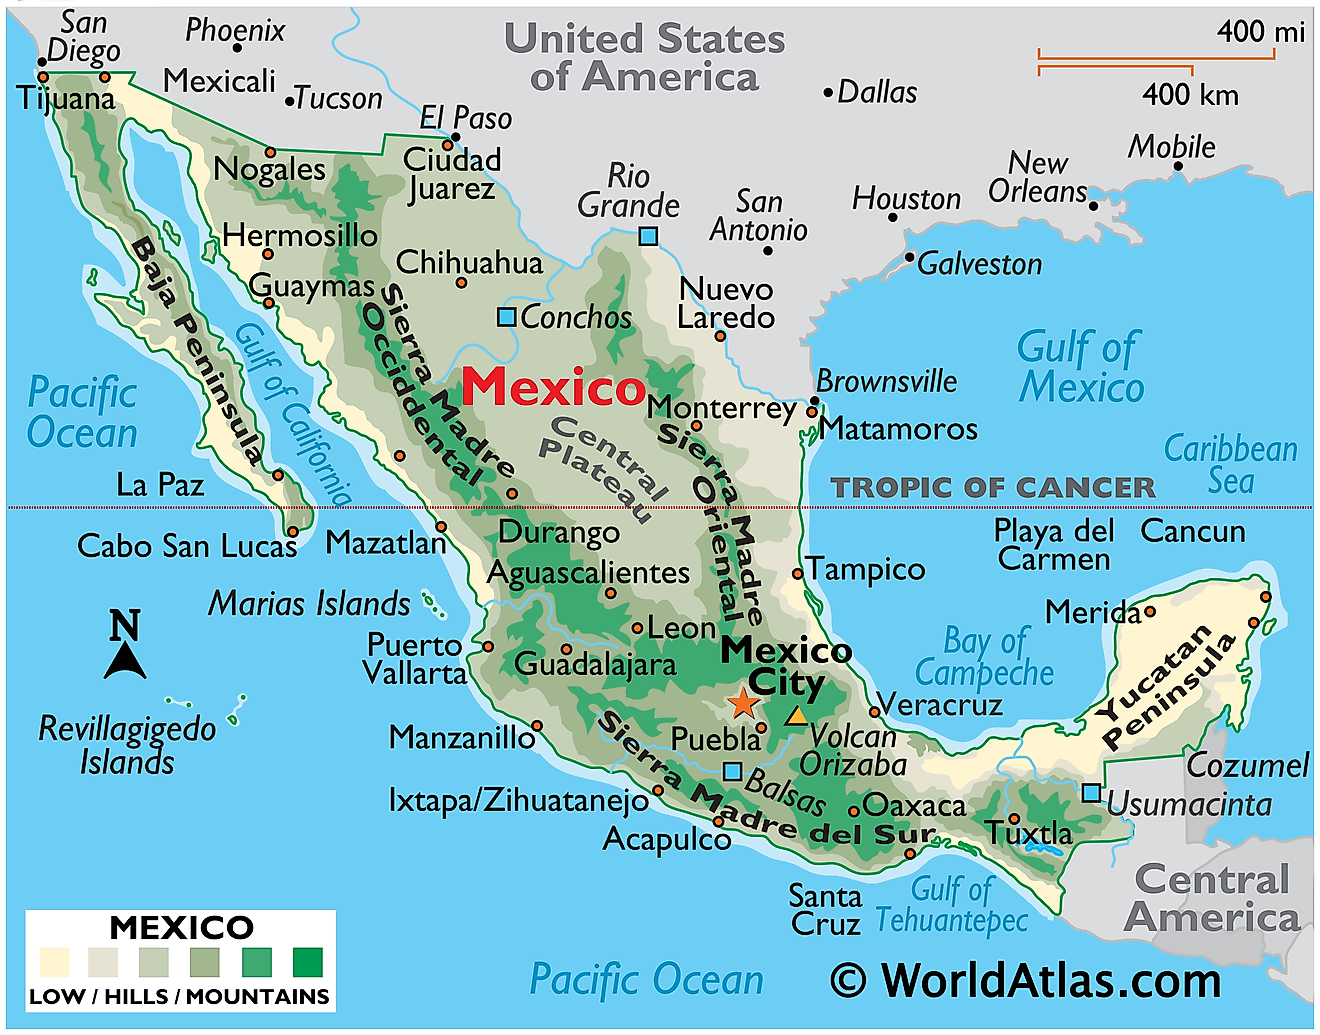 Physical Map of Mexico showing relief, major mountain ranges, the Yucatan Peninsula, Baja Peninsula, volcanoes, major cities, islands, international borders, and more.